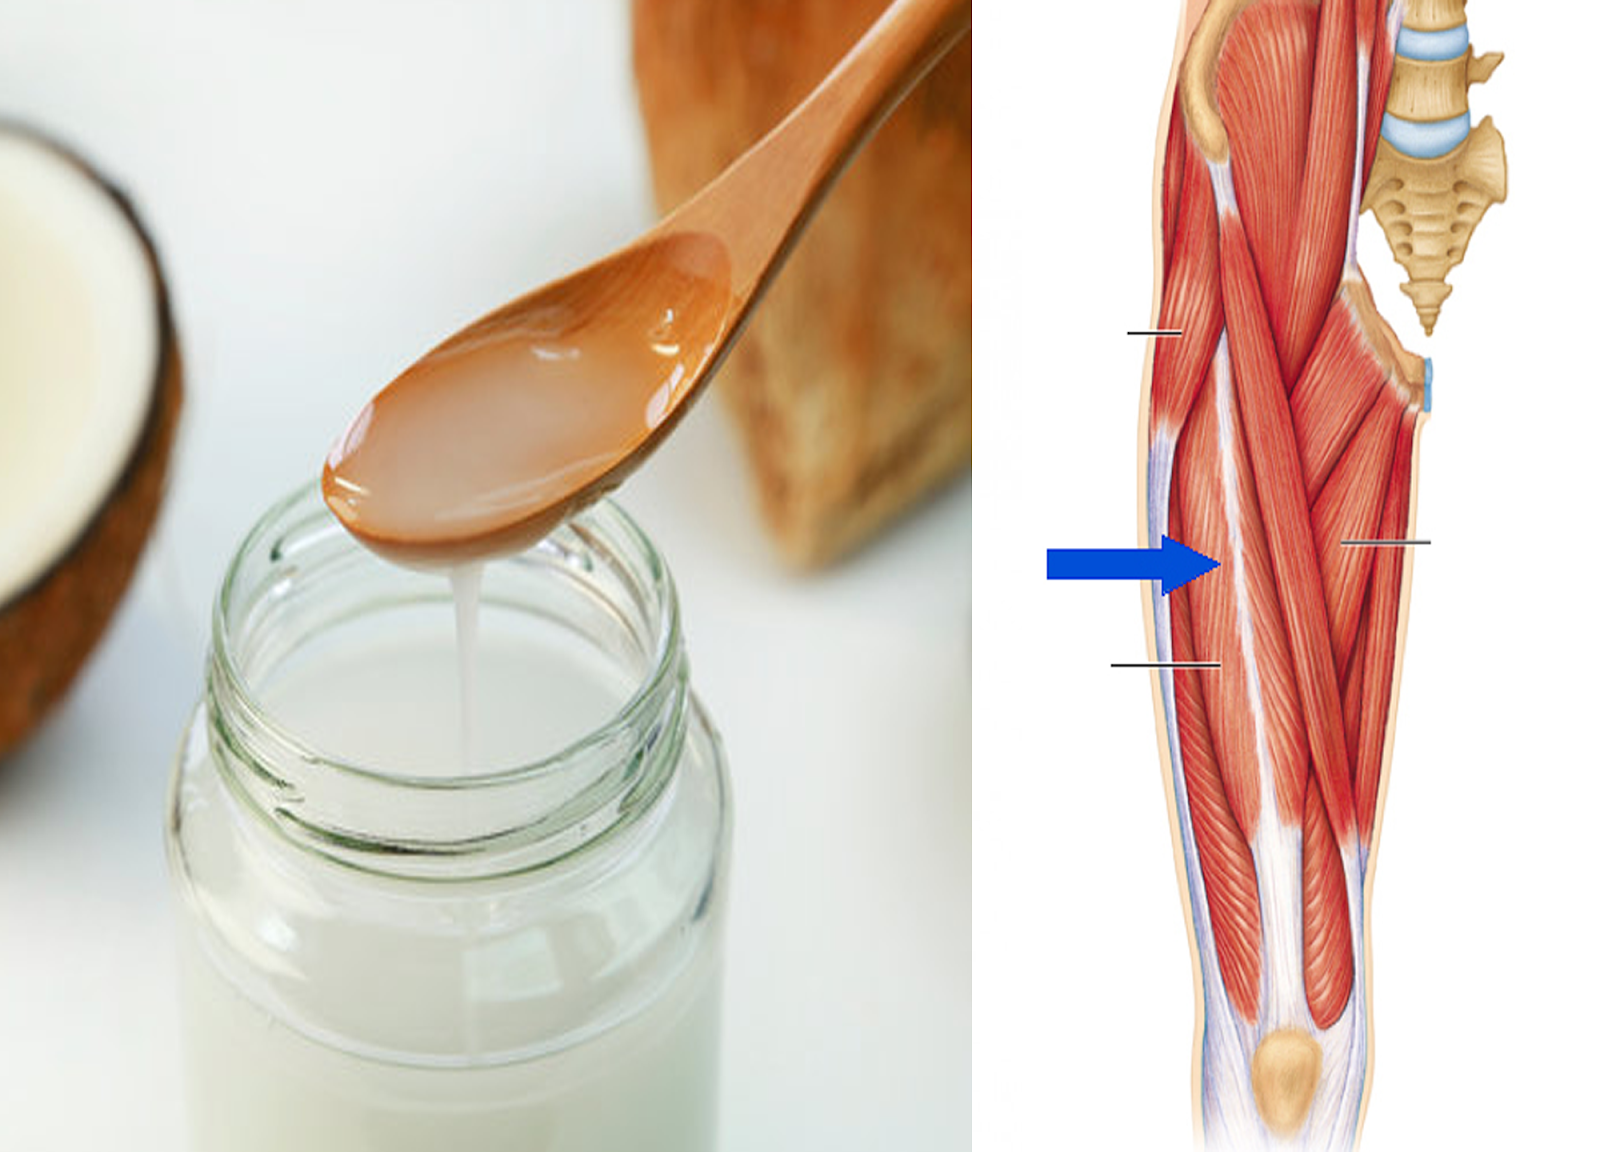 How long does it take for coconut oil to remove Cellulite